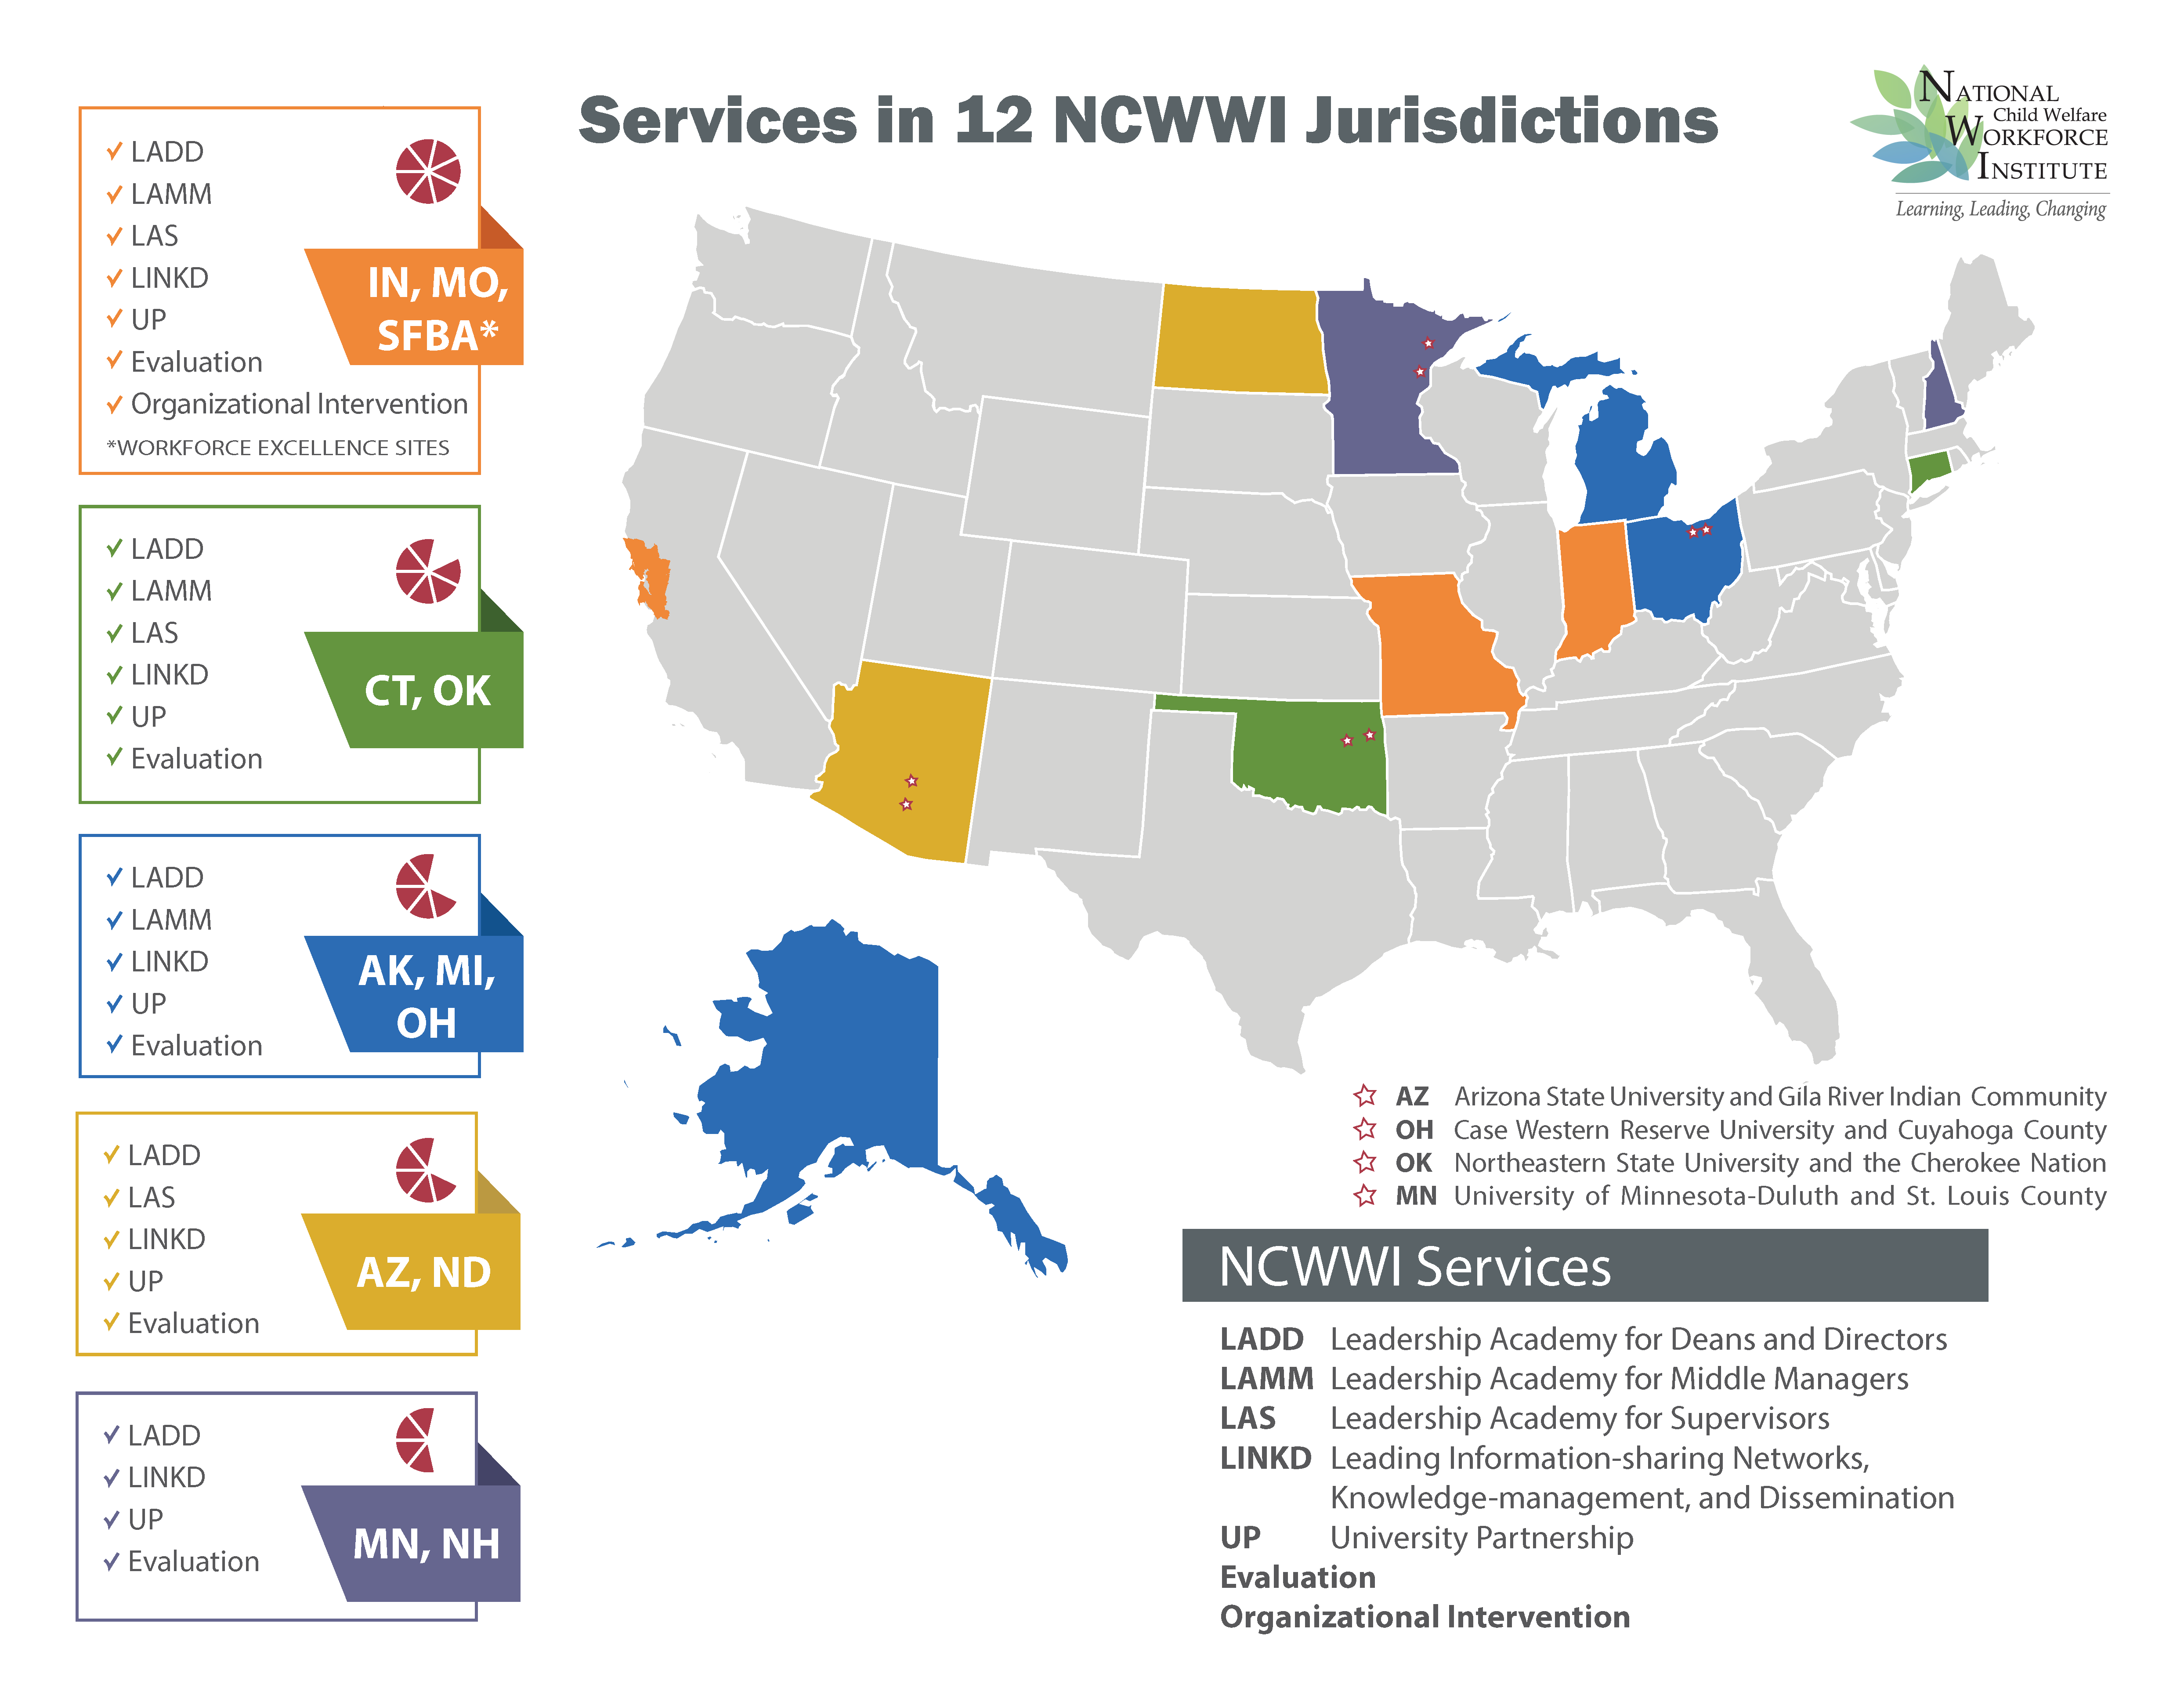 NCWWI Services in 12 Jurisdictions